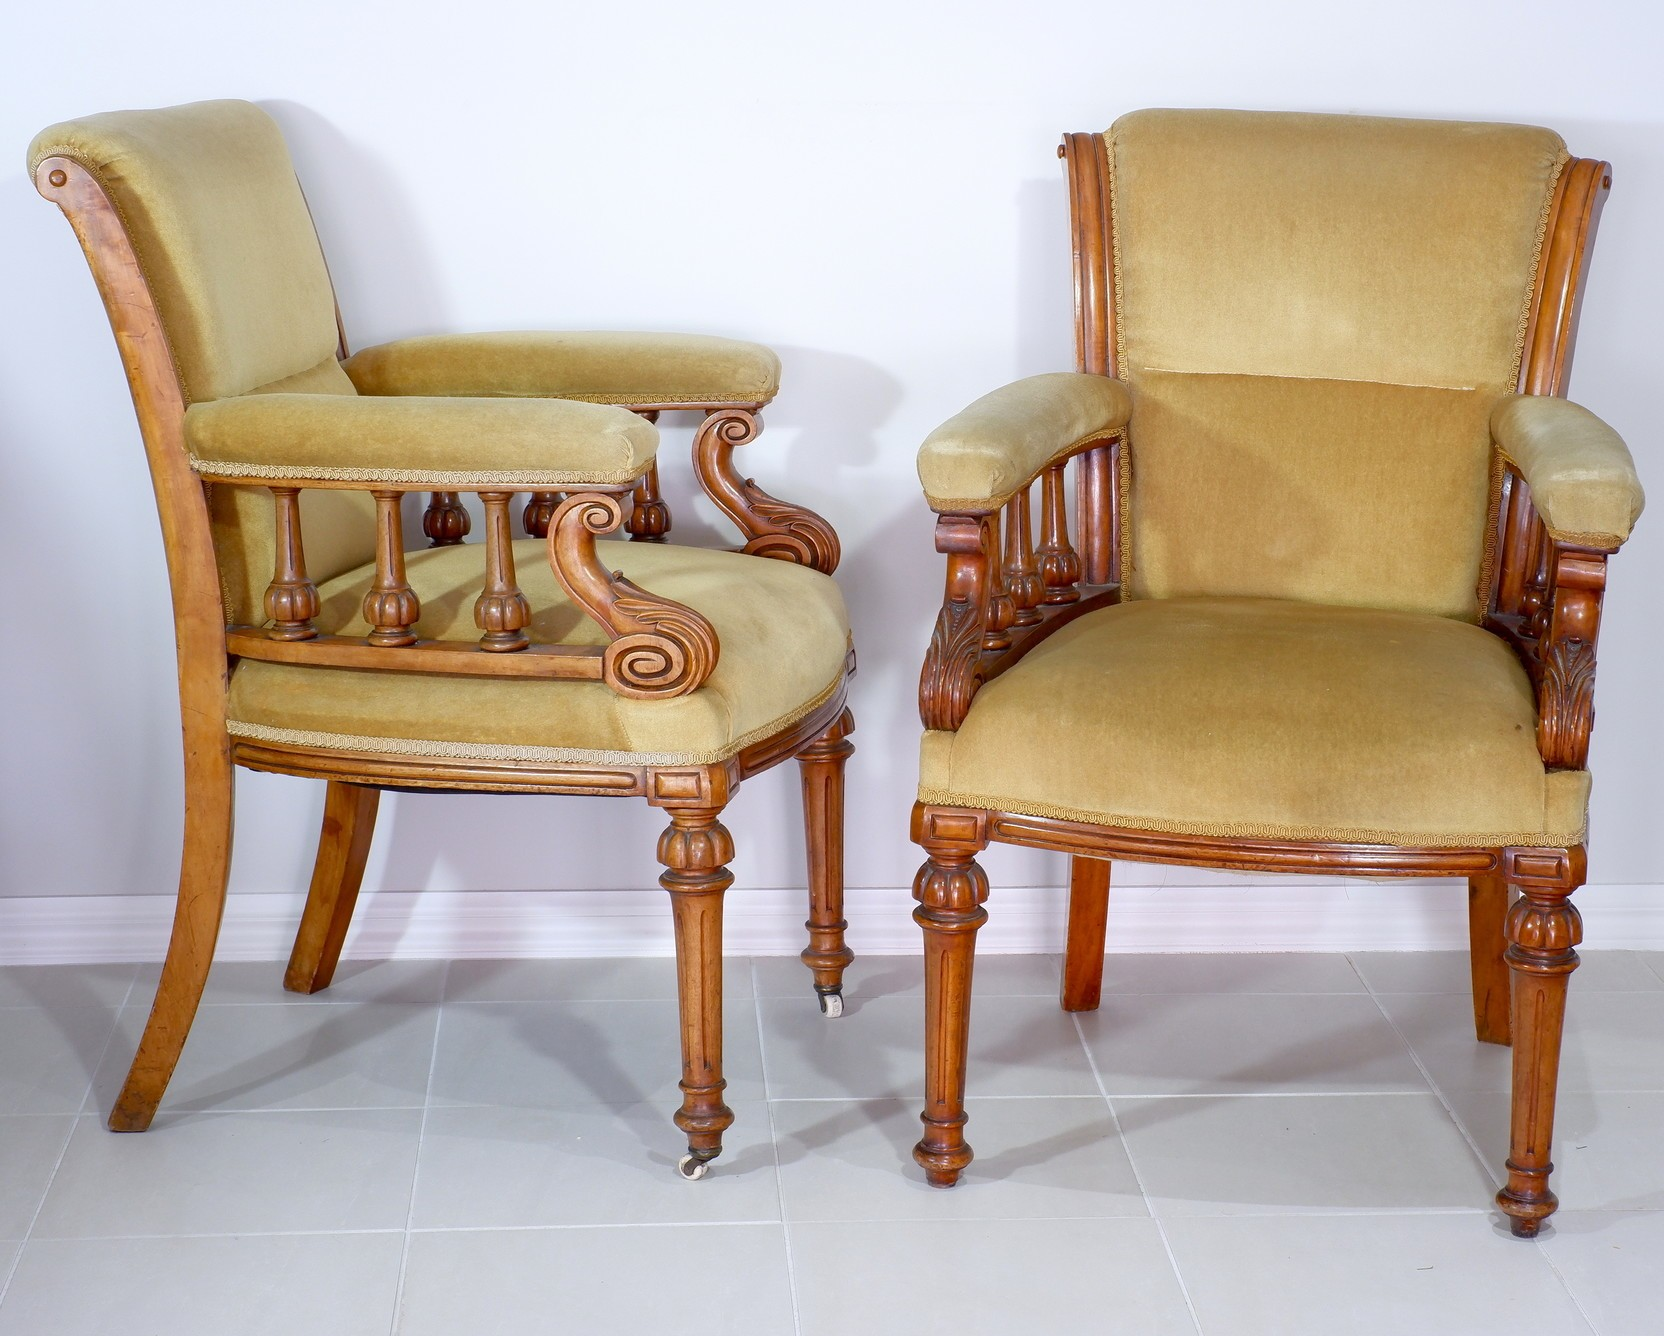 'Pair of Late Victorian Walnut and Olive Green Velvet Upholstered Drawing Room Chairs'